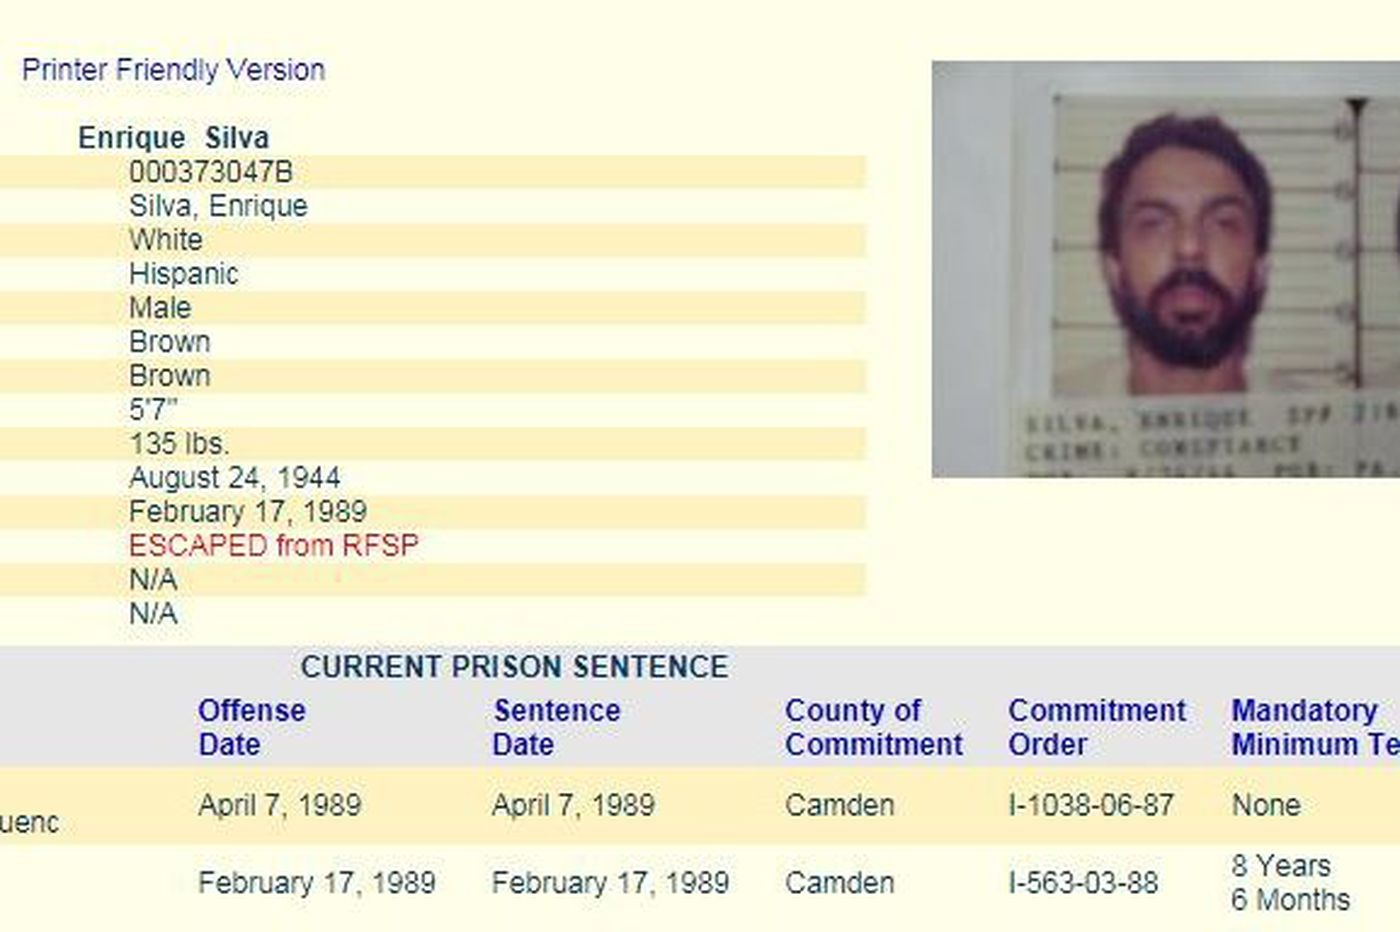 South Jersey prison escapee captured in Orlando after 23 years on the run